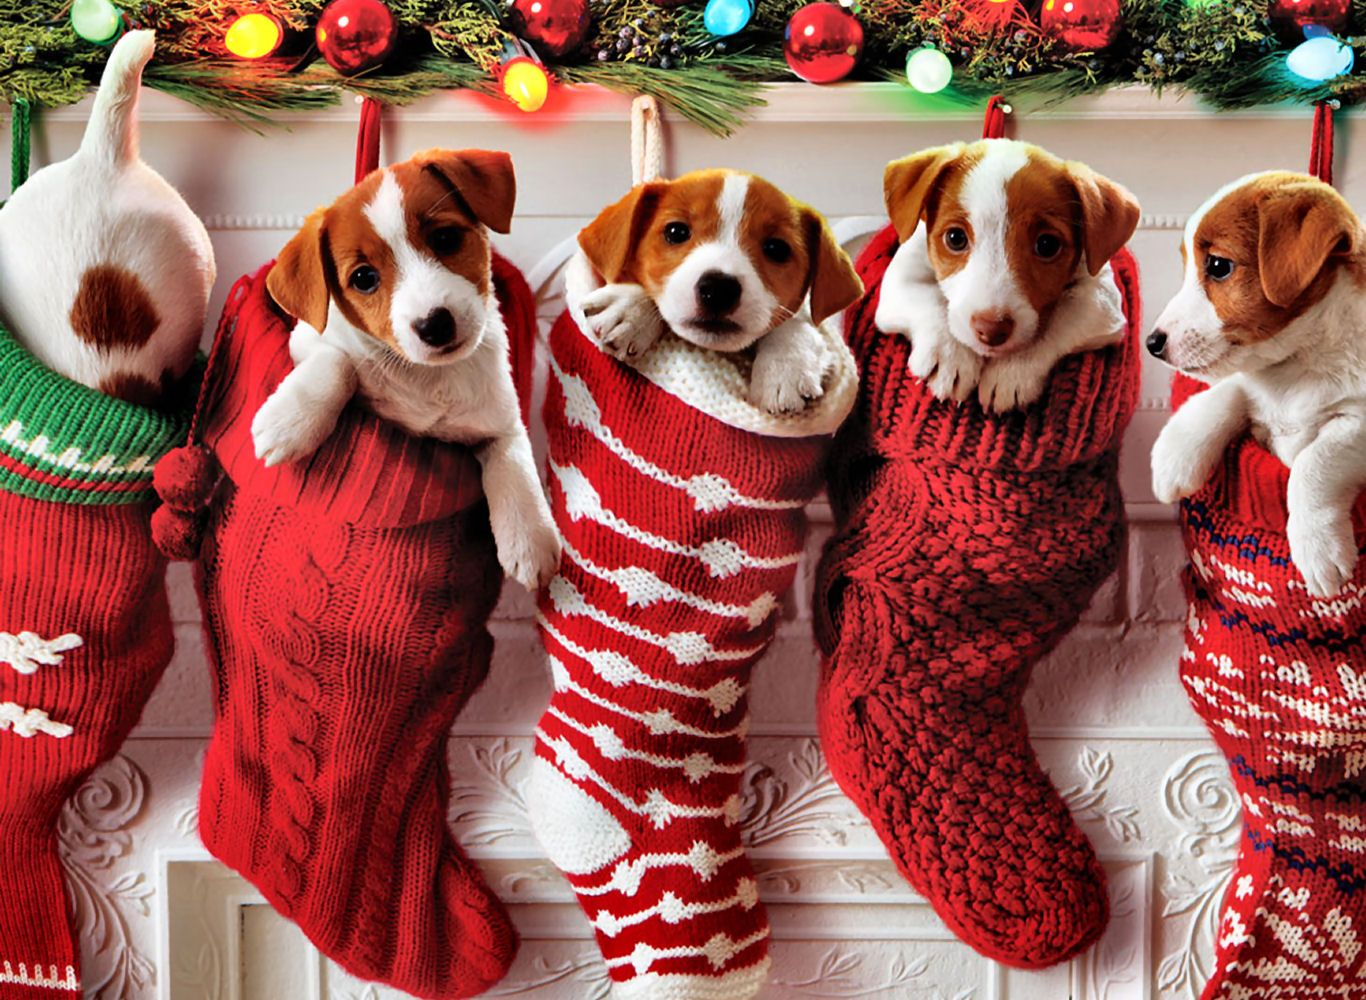 Jack Russell Puppies in Knitted Christmas Stockings